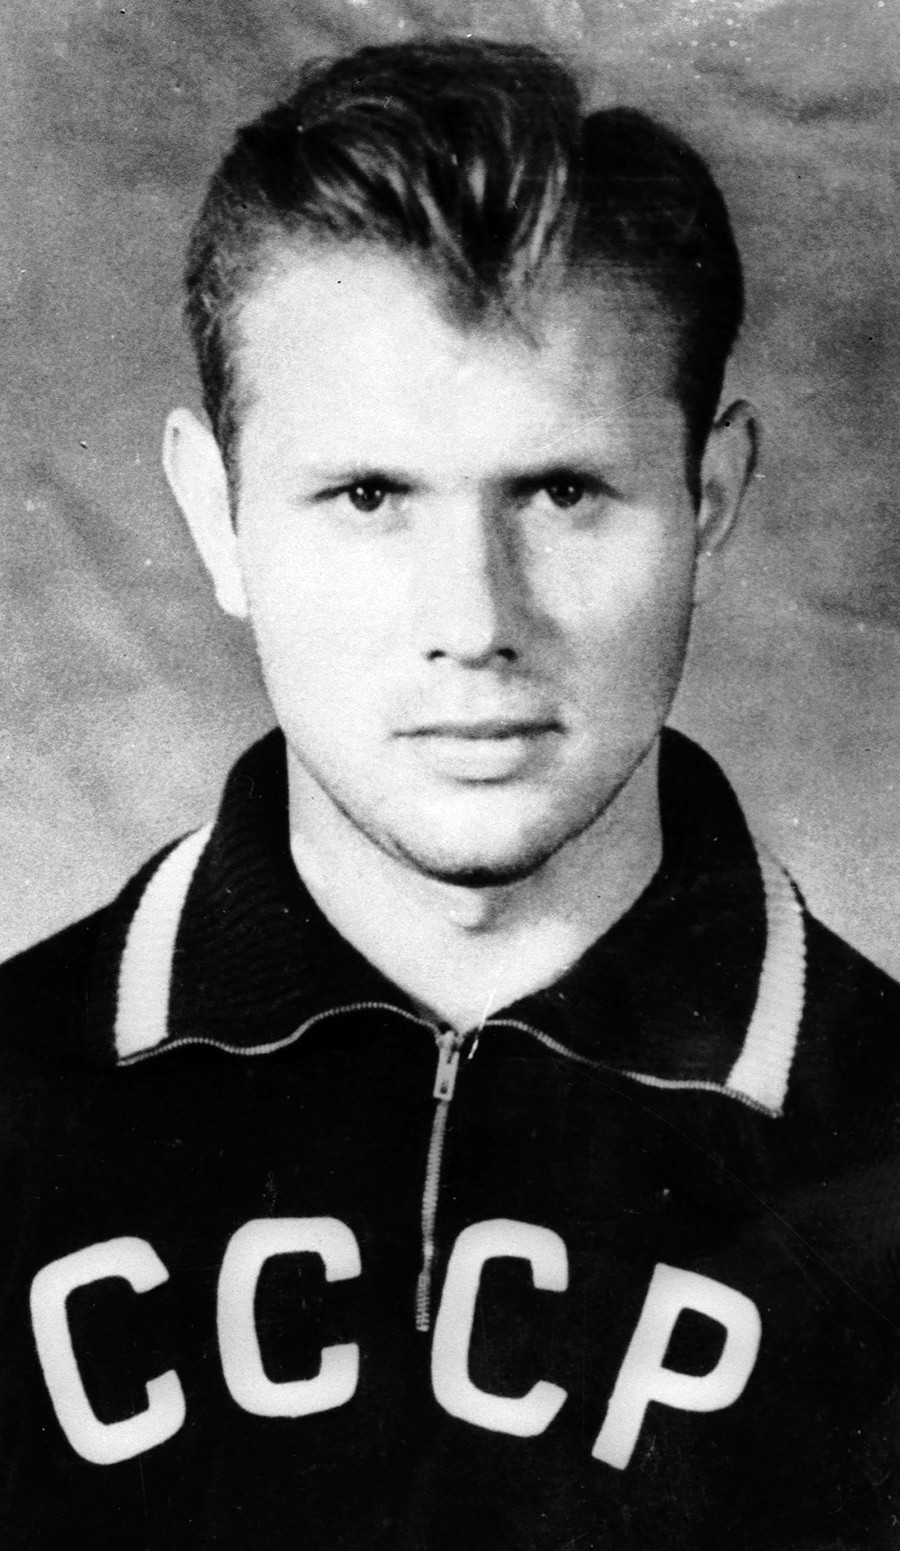 Eduard Streltsov in the USSR football national team uniform.